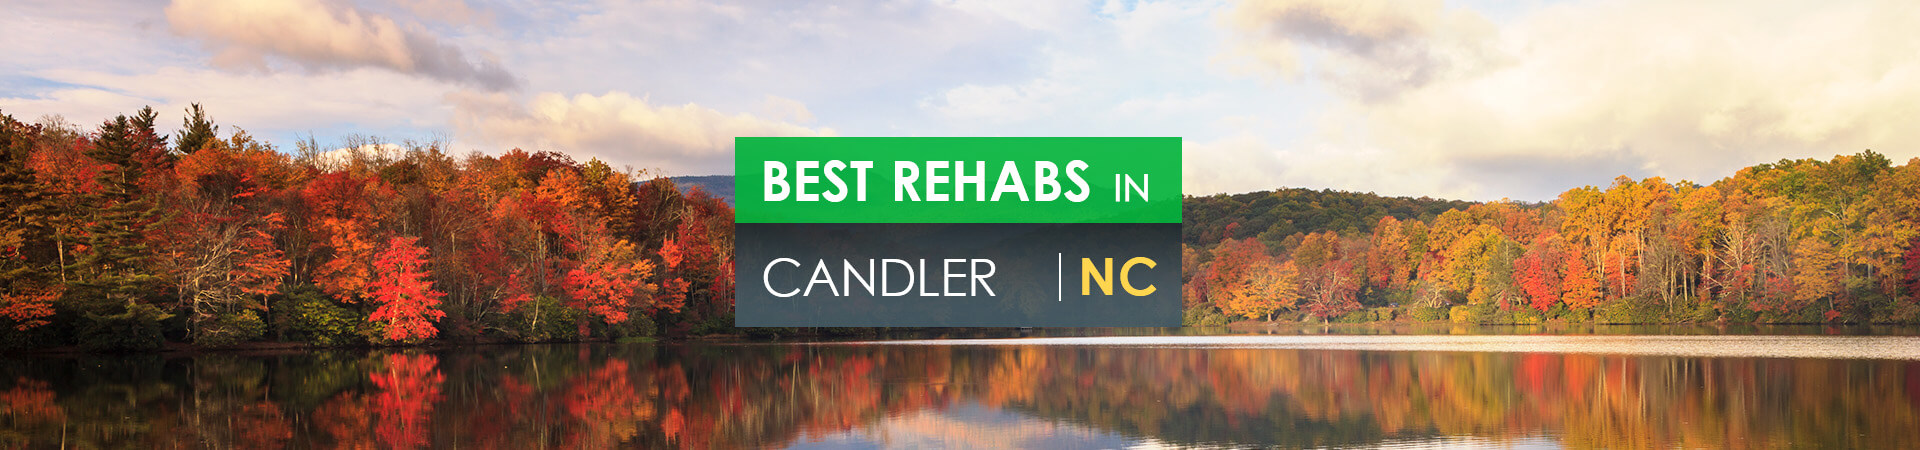 Best rehabs in Candler, NC